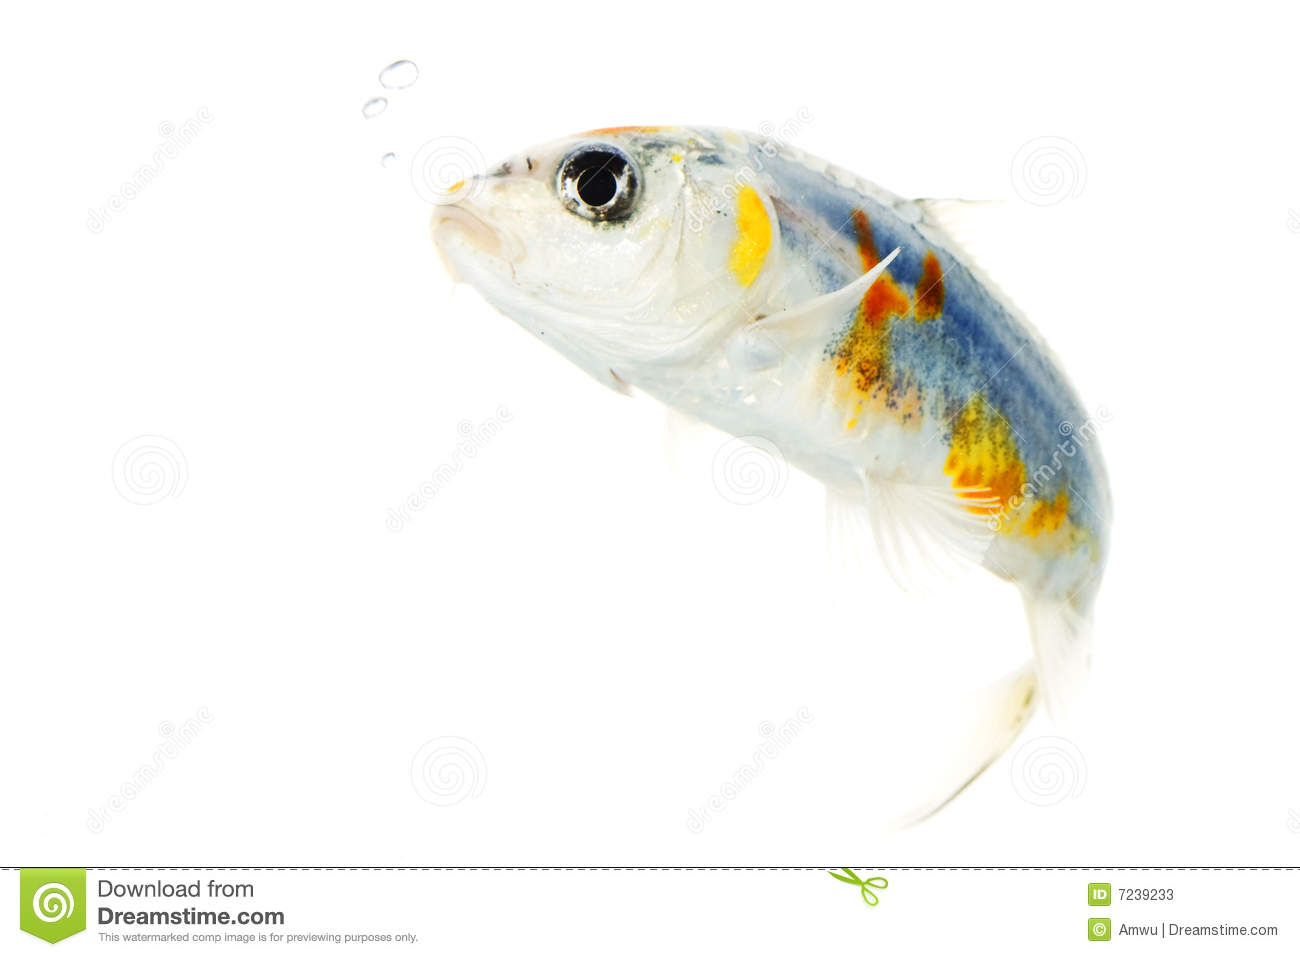 Silver koi fish stock photos image 7239233 for Silver koi fish